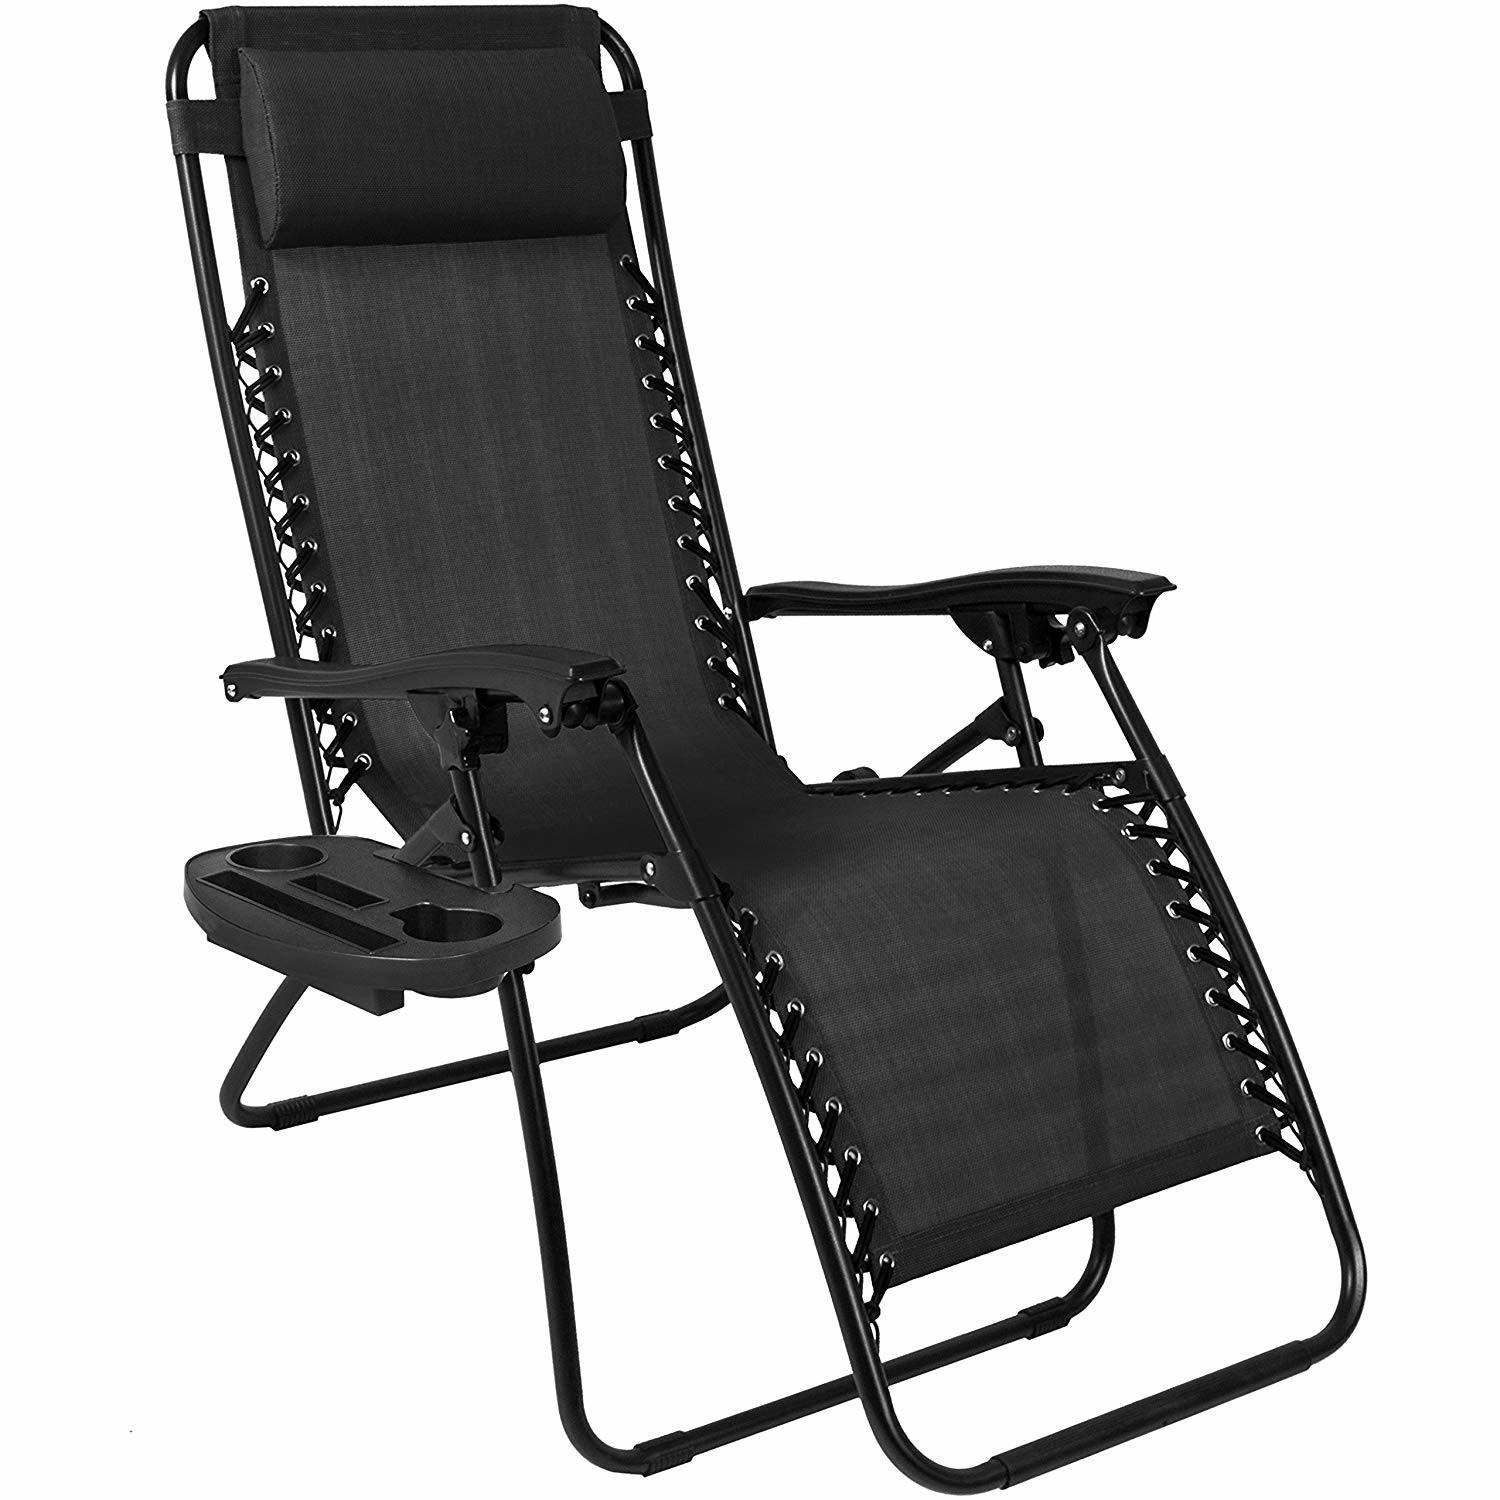 Hot Item Bonnlo Infinity Zero Gravity Chair Outdoor Lounge Patio Chairs With Pillow And Utility Tray Adjustable Folding Recliner For Deck Patio